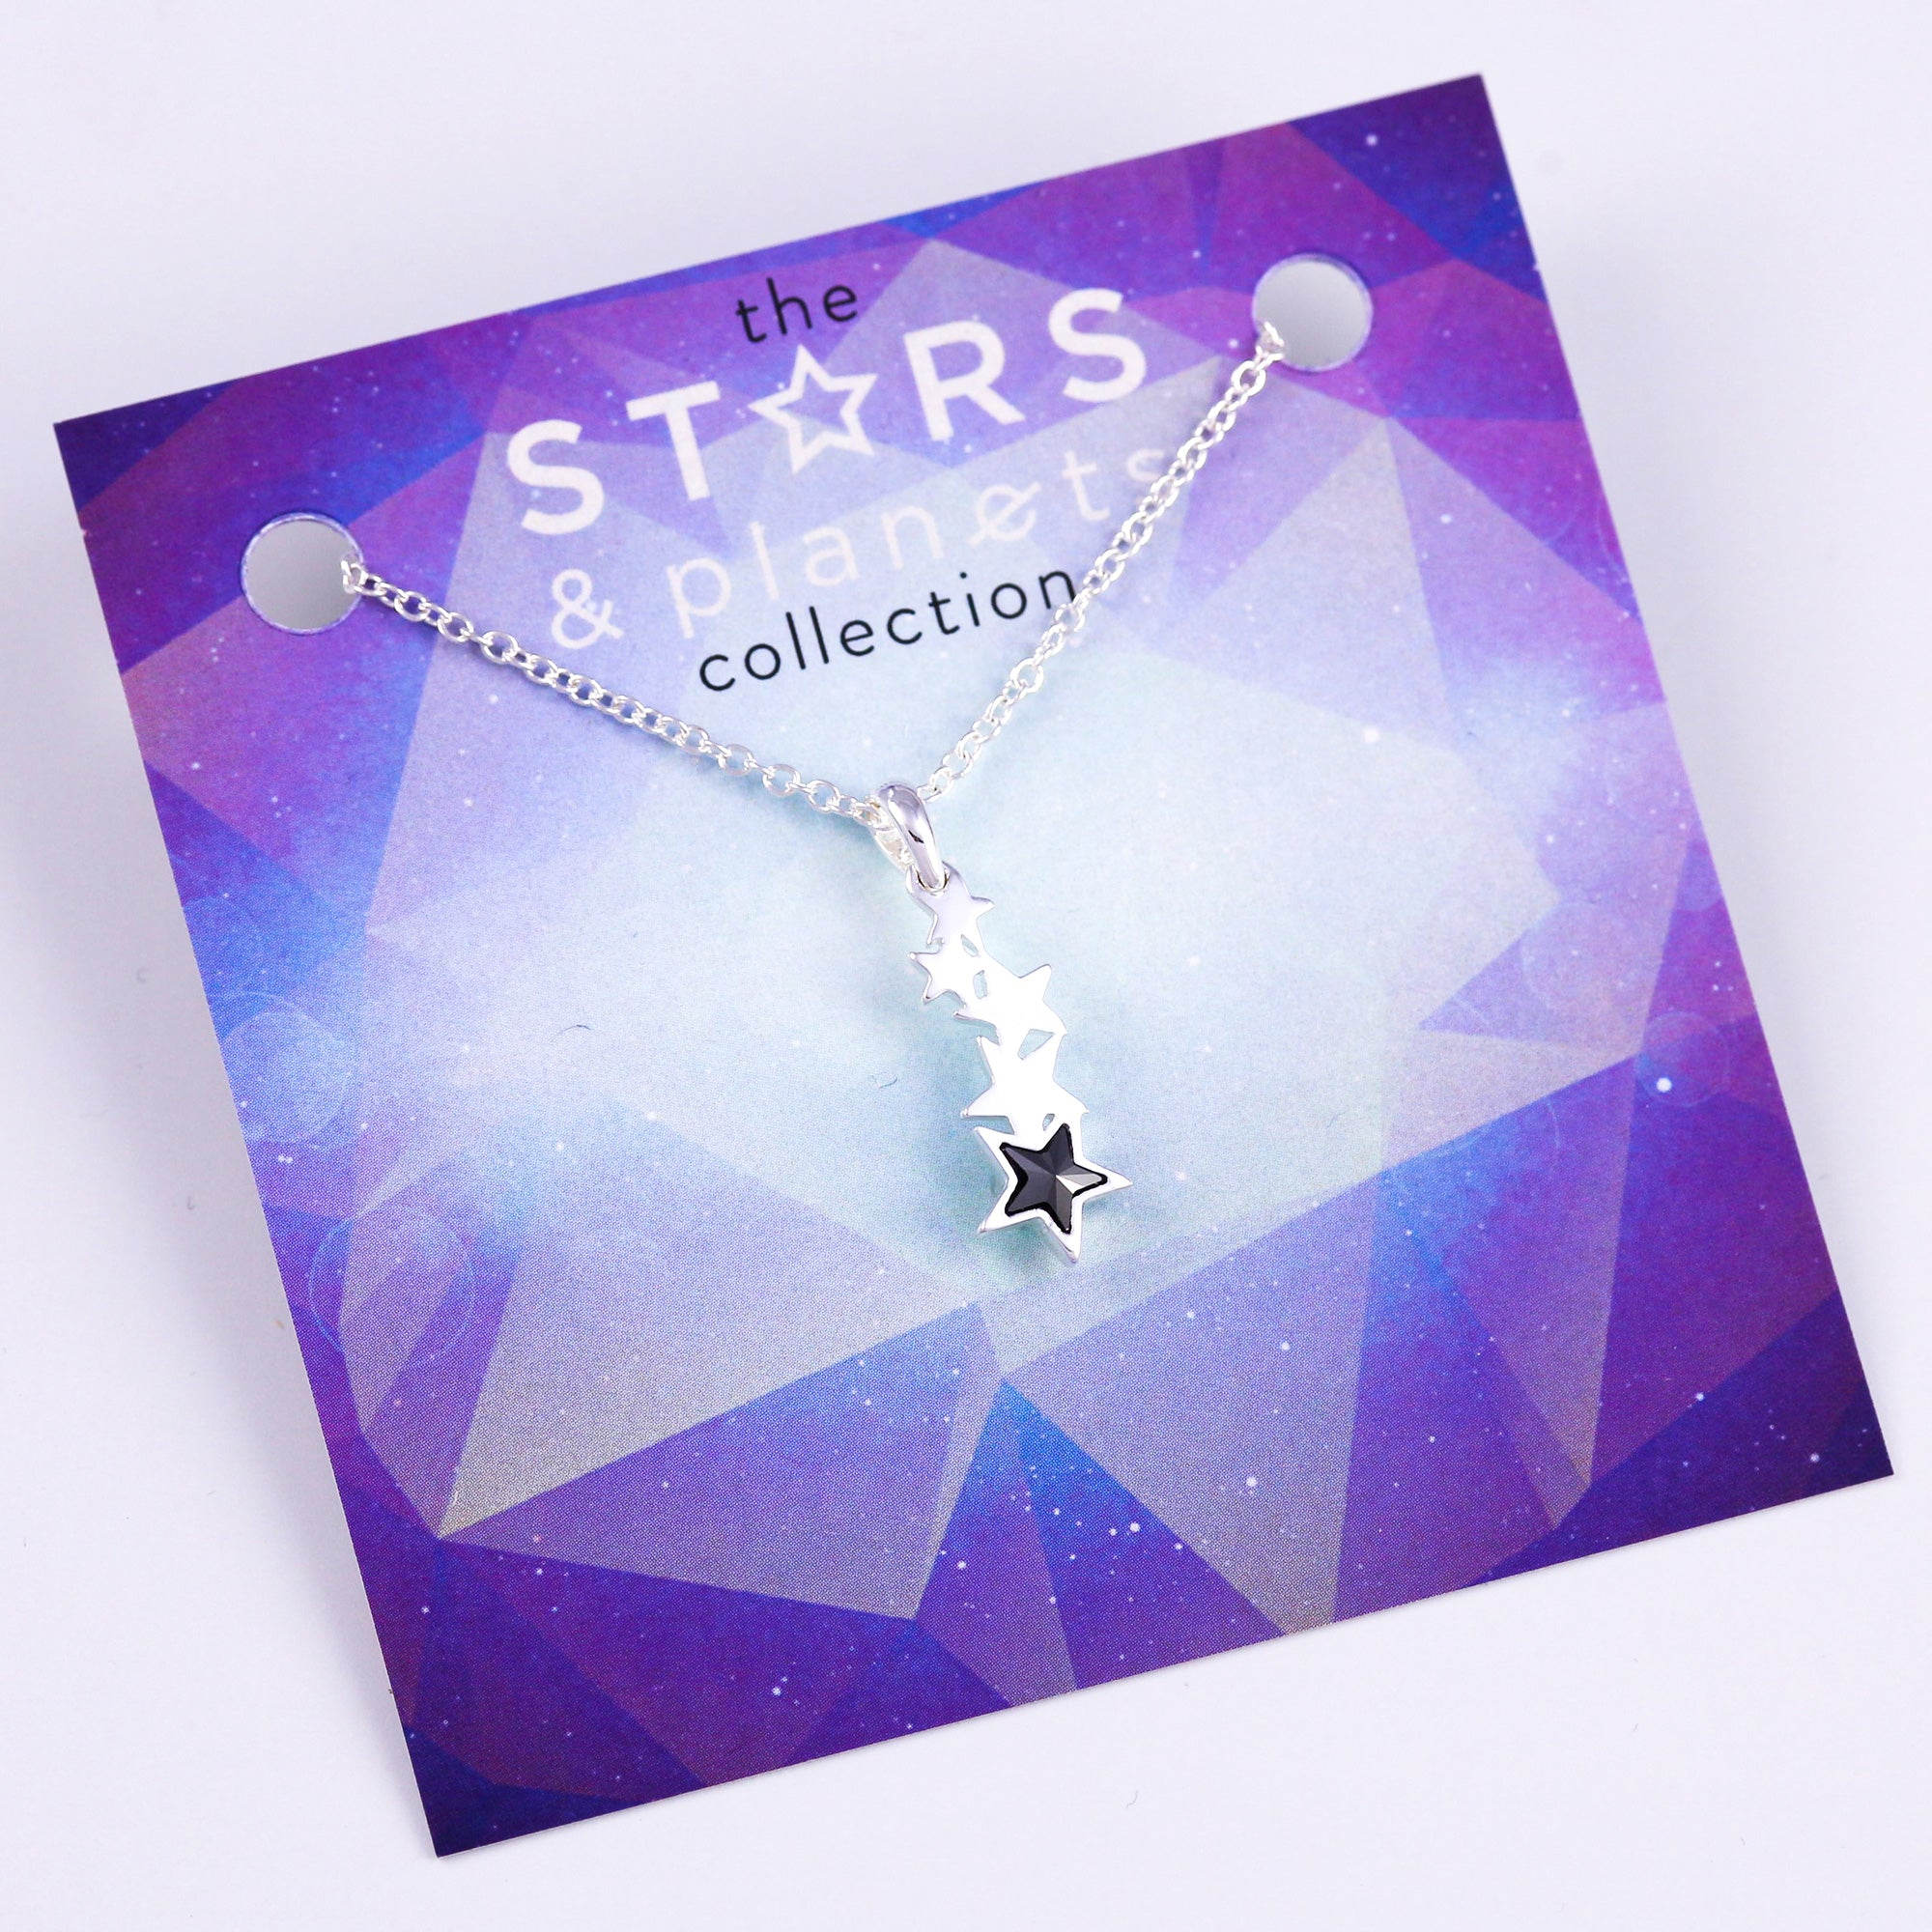 Silver and Black Shooting Star Necklace Stars & Planets Collection